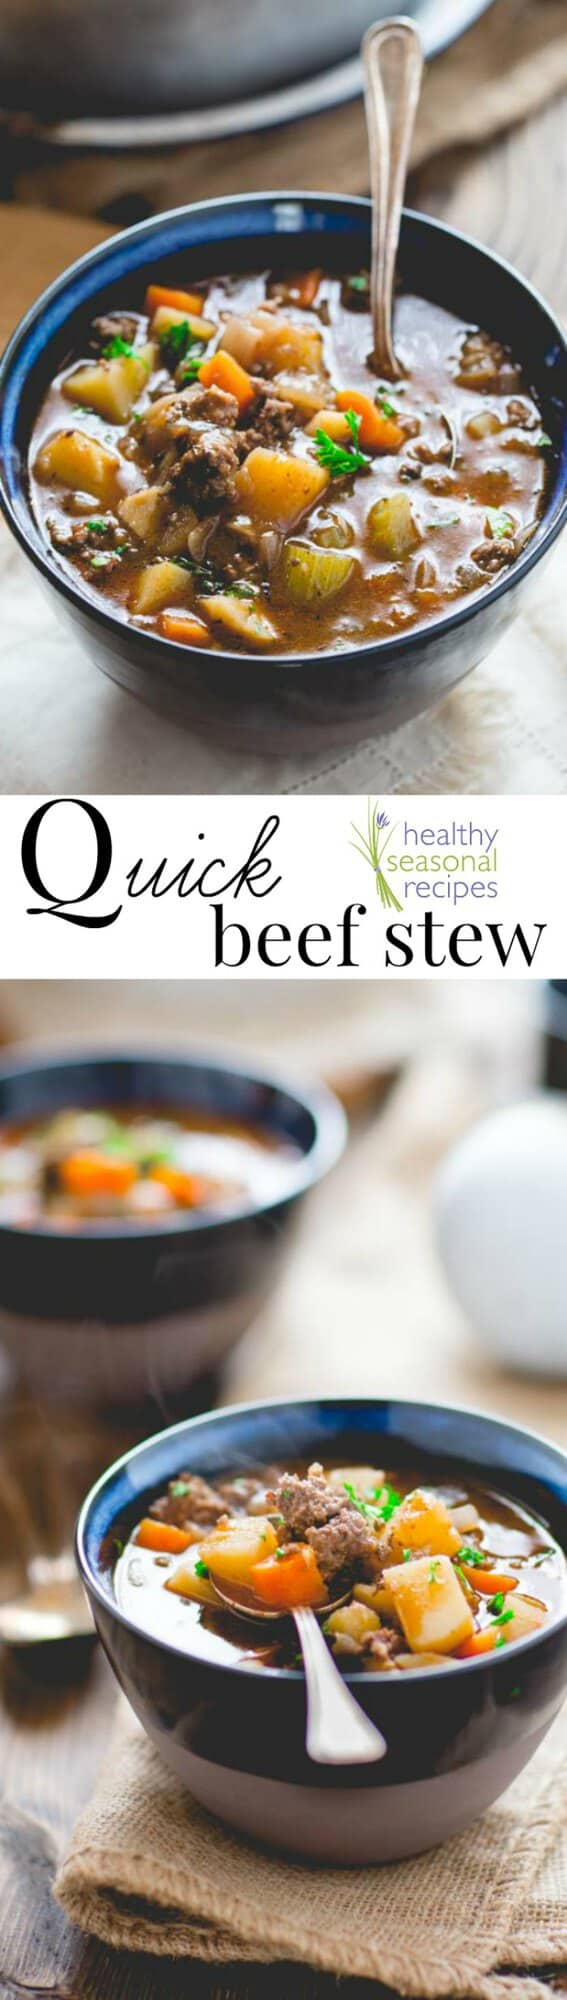 Most of these recipes involve mixing up ingredients and popping them into a slow cooker for a prescribed number of hours. Save even more time by starting some of these dishes overnight or first.